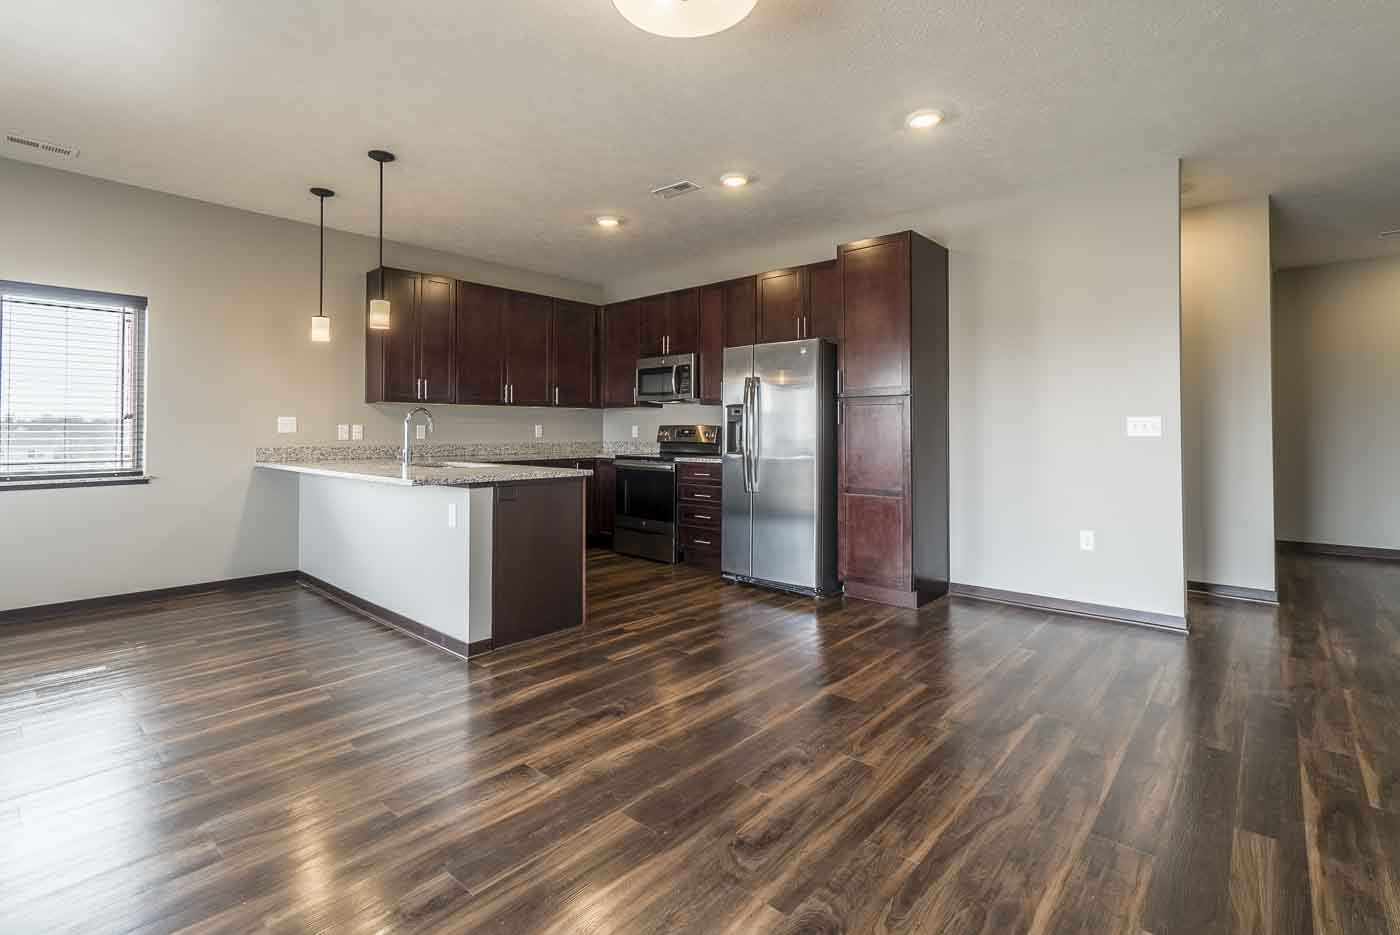 hardwood floor installation des moines of studio one two three bedroom apartments rent 360 at jordan west with regard to picasso c3 floor plan 360 at jordan west new luxury apartments in des moines